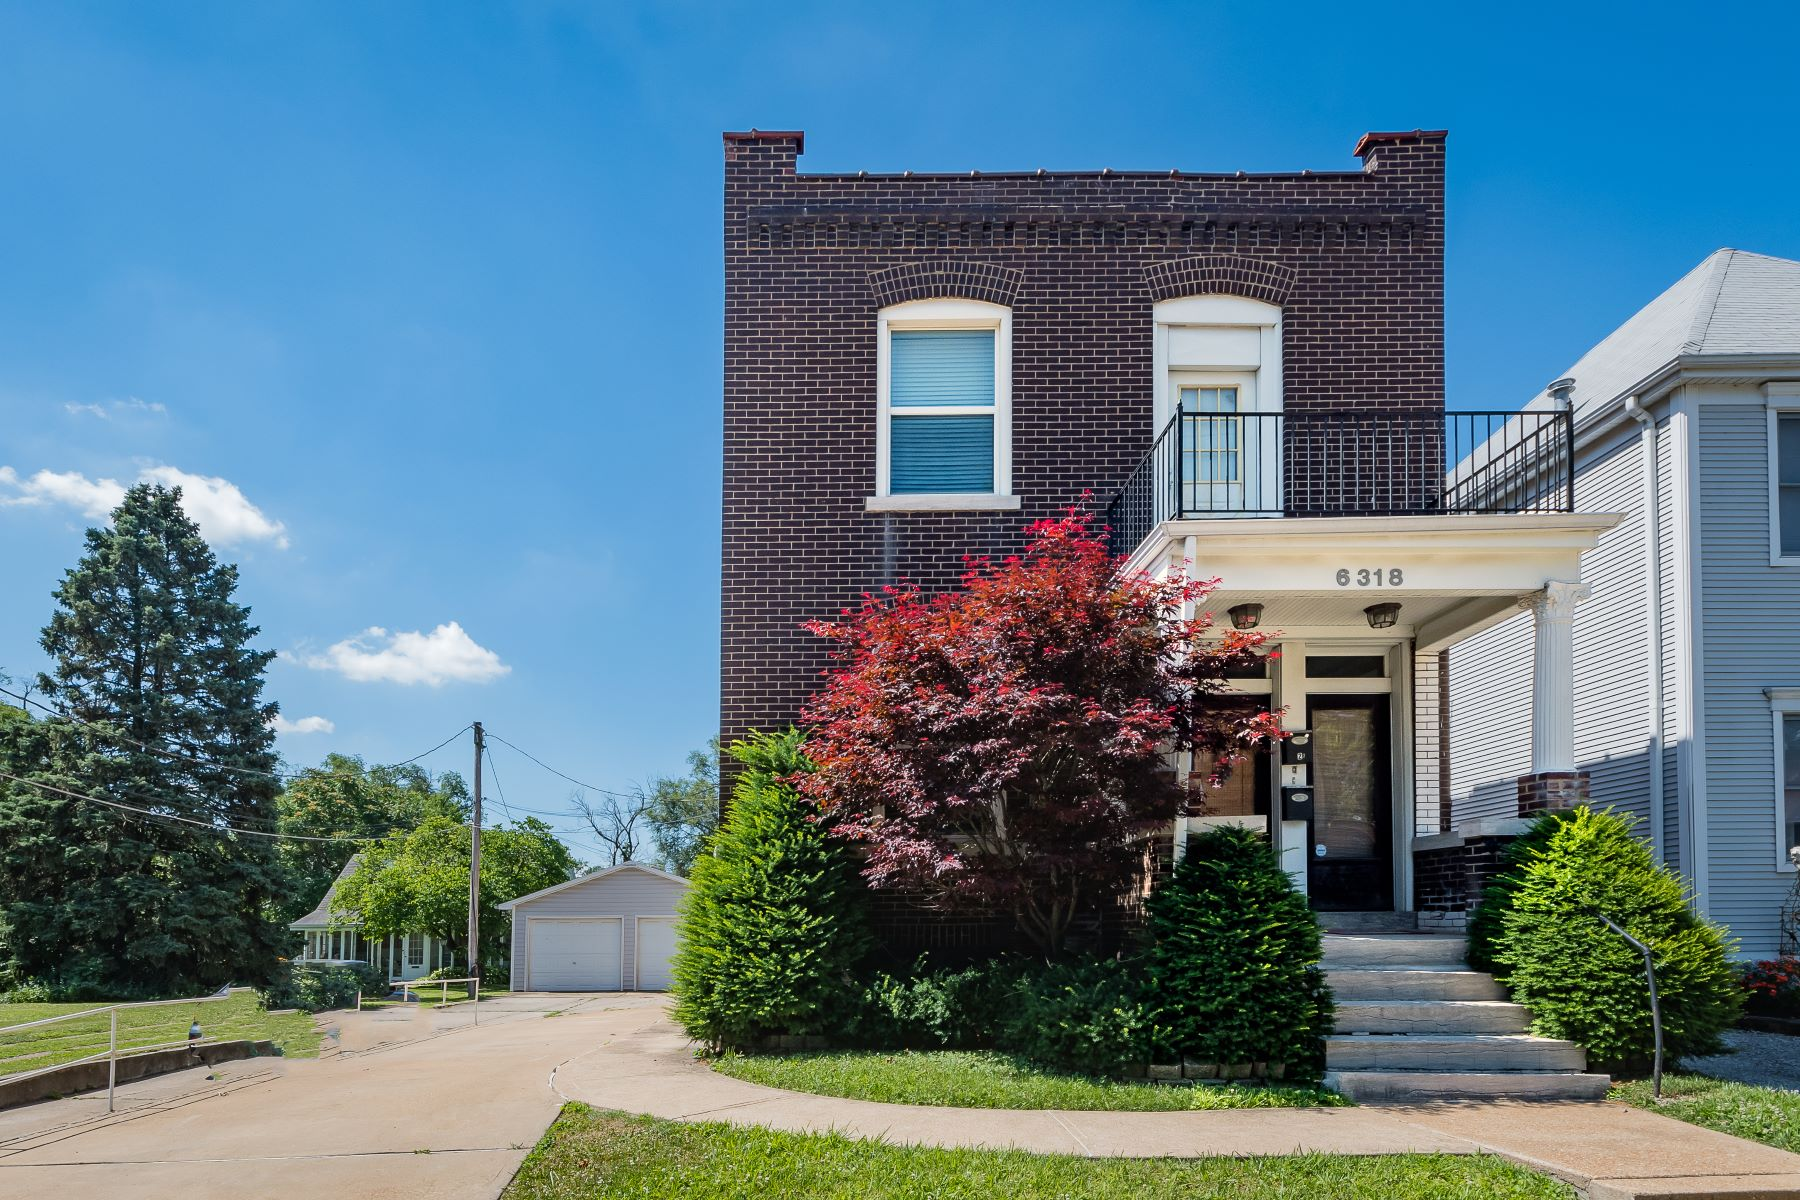 Multi-Family Homes for Sale at Great Dogtown Multi-building Property 6318 West Park Avenue St. Louis, Missouri 63139 United States